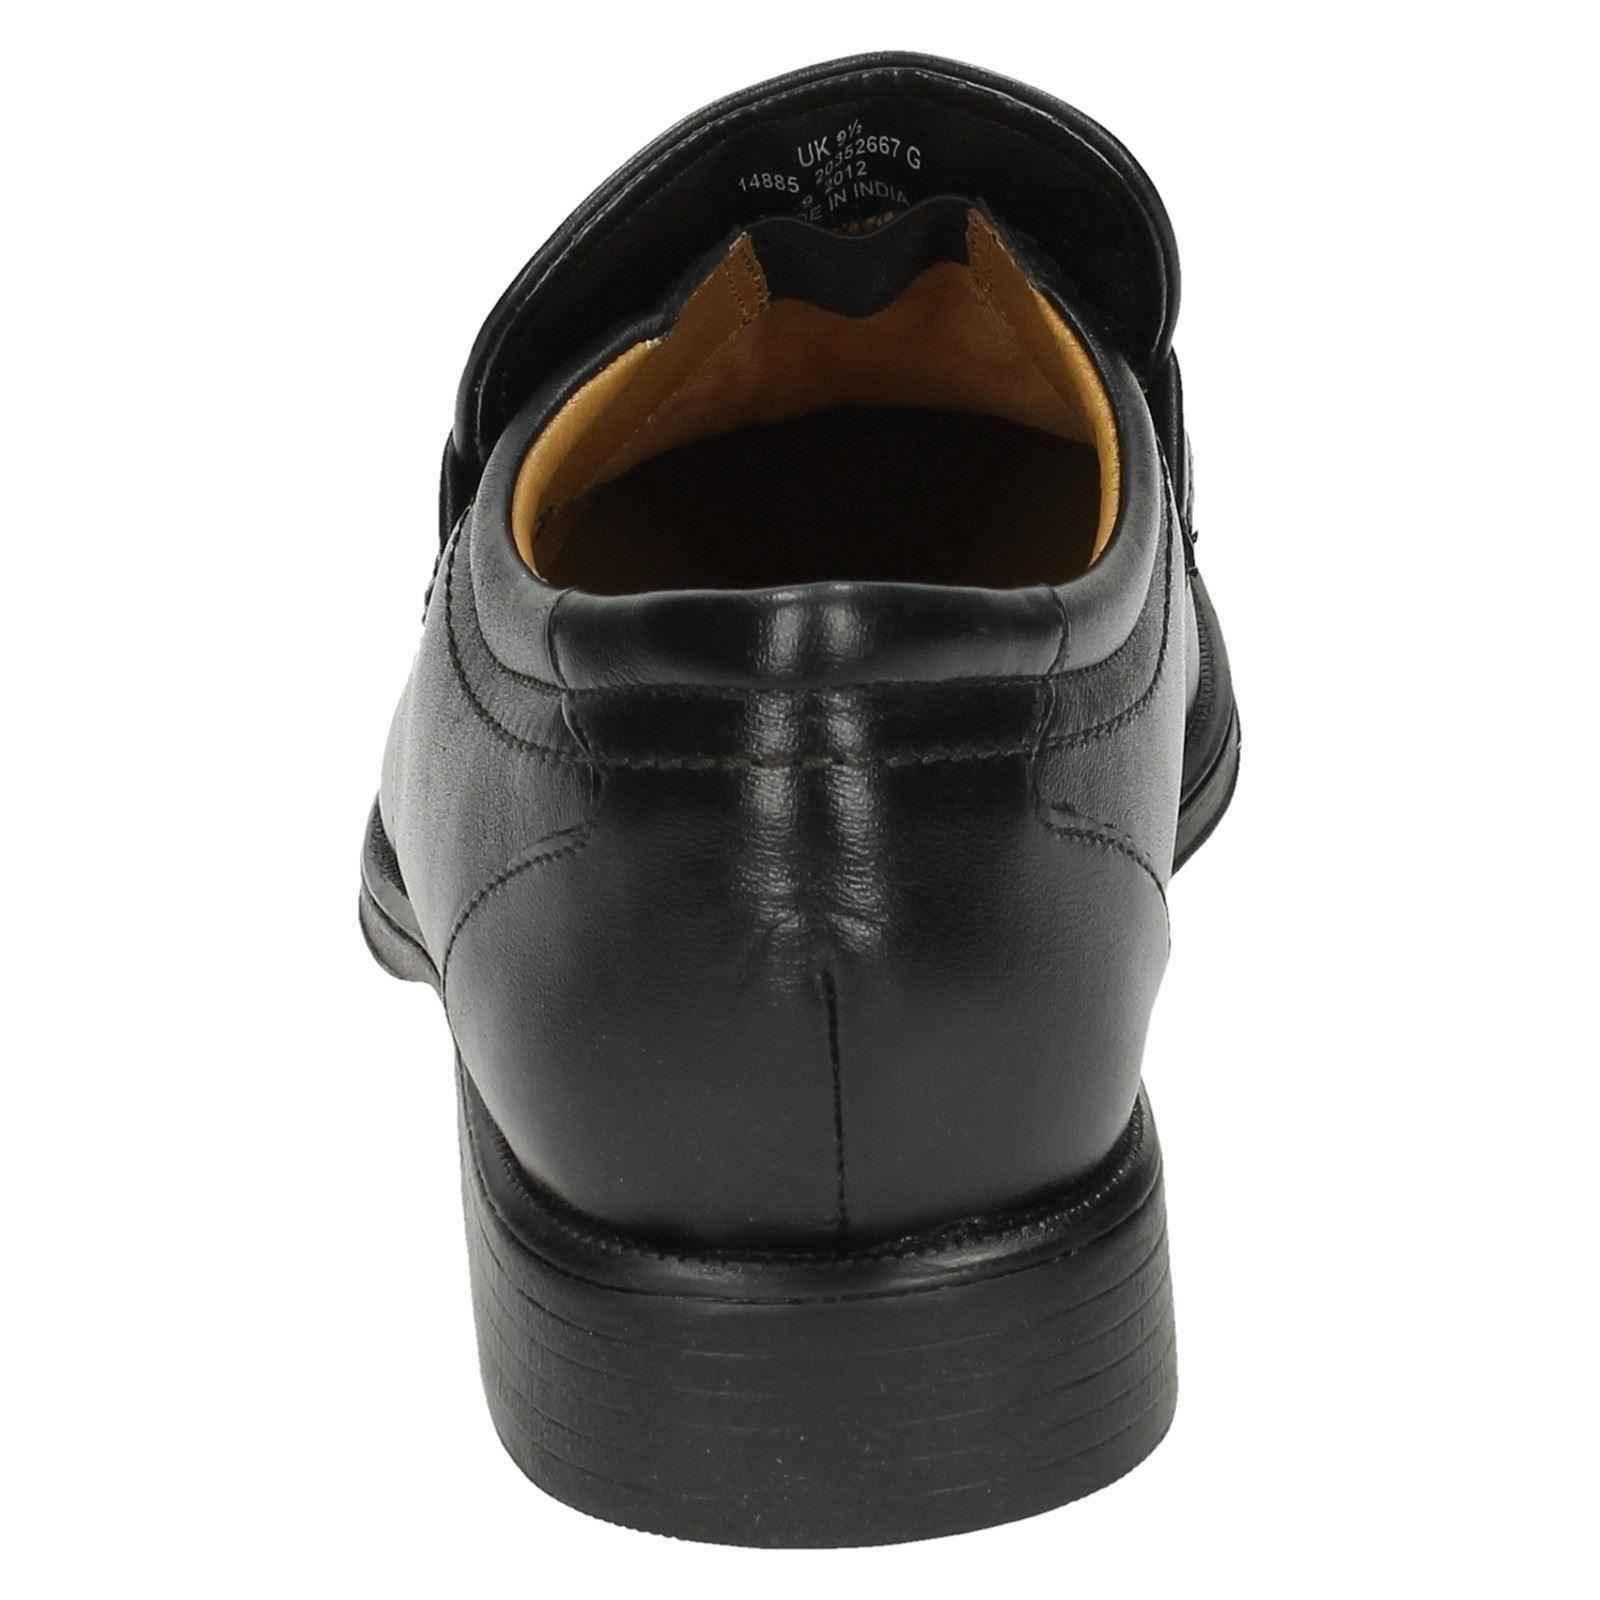 Hombre Clarks Slip On On On Zapatos Handle Work ~ N 22a6d4